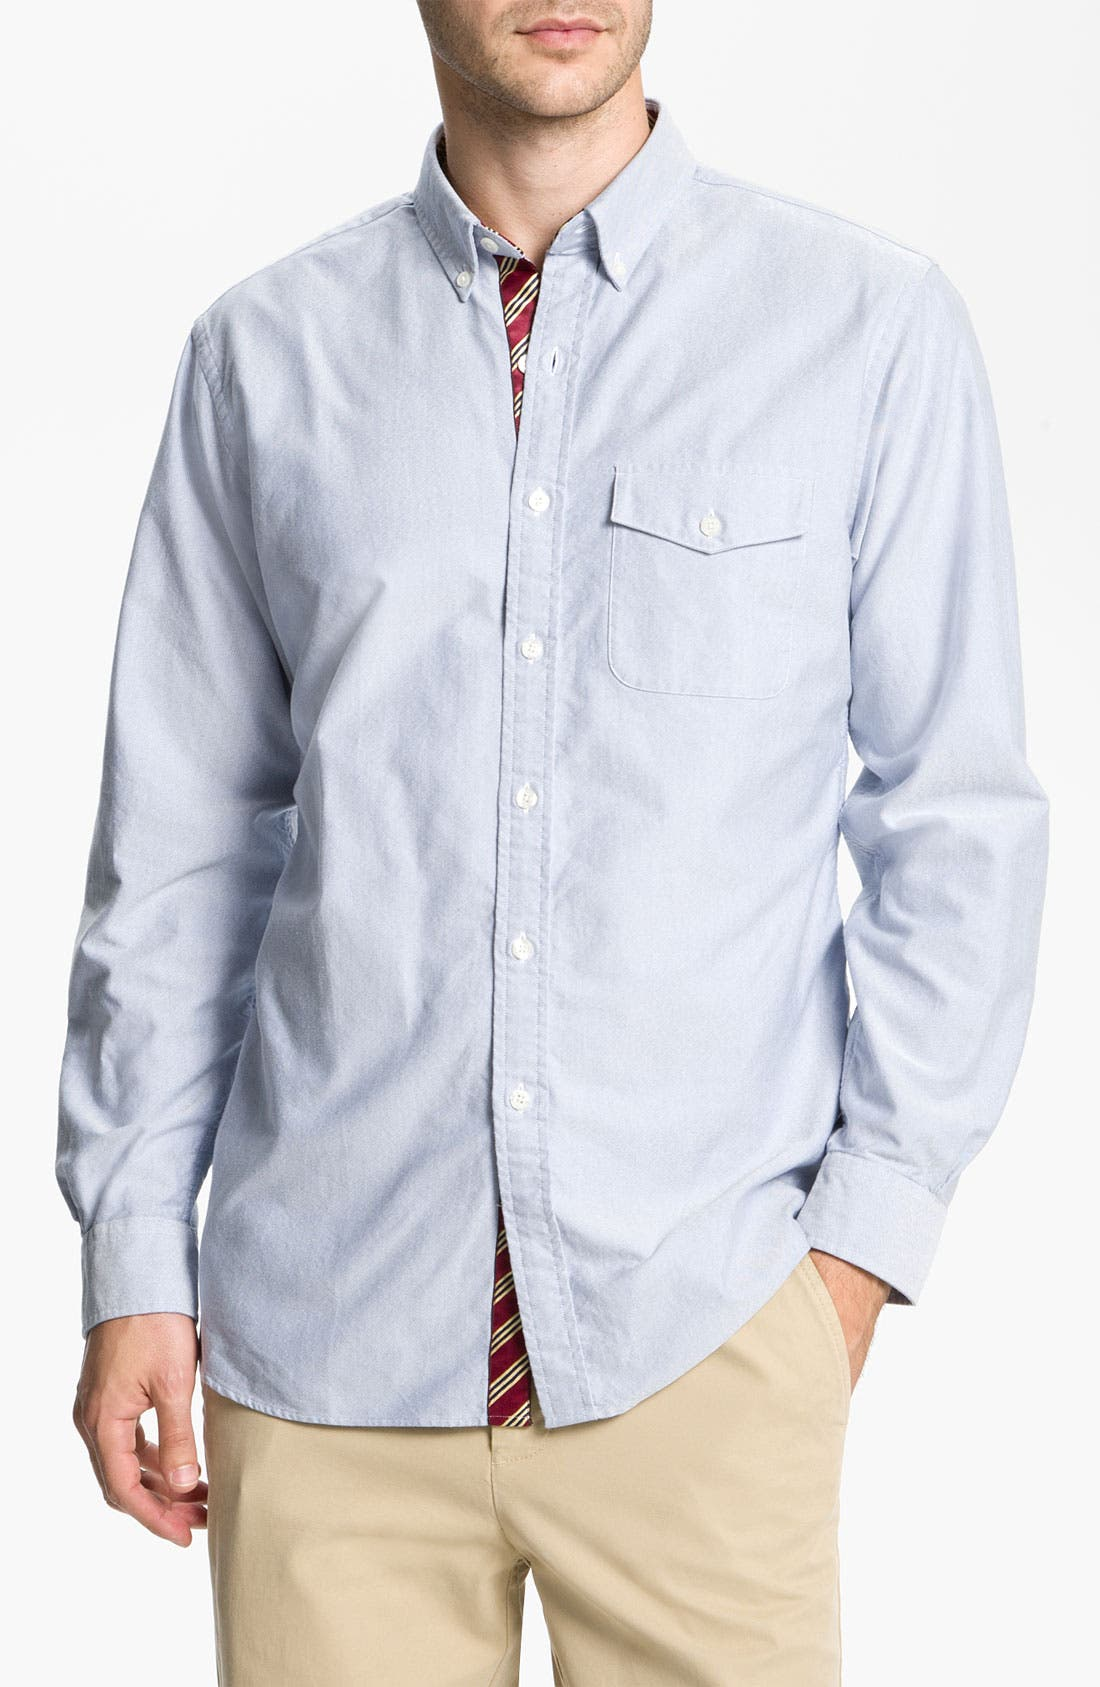 Alternate Image 1 Selected - Brooks Brothers Oxford Shirt